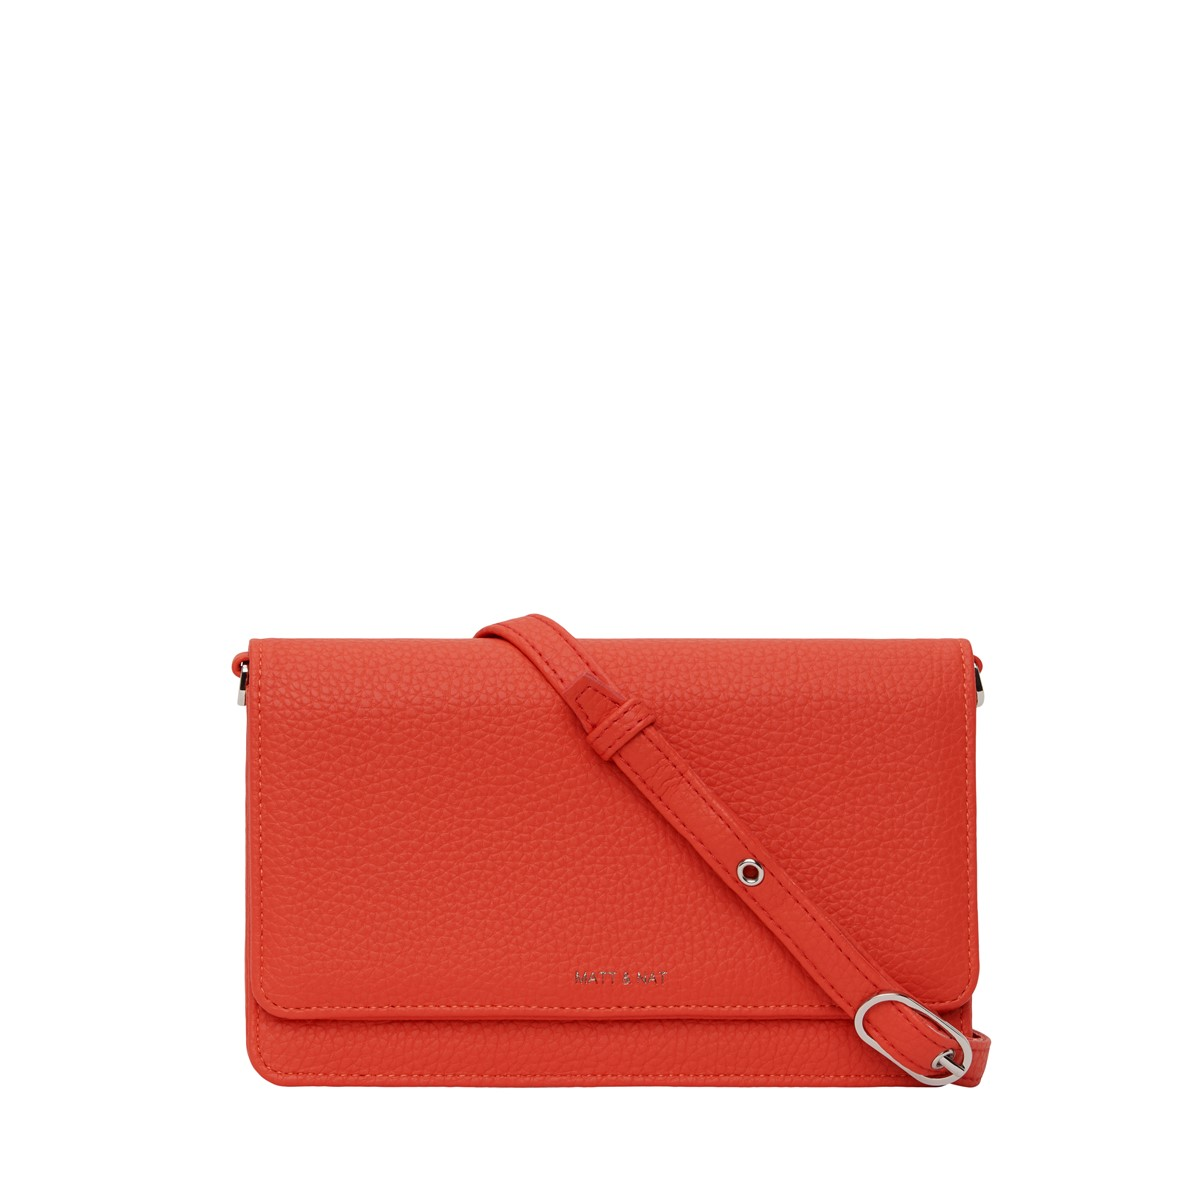 Bee Purity Crossbody Bag in Red